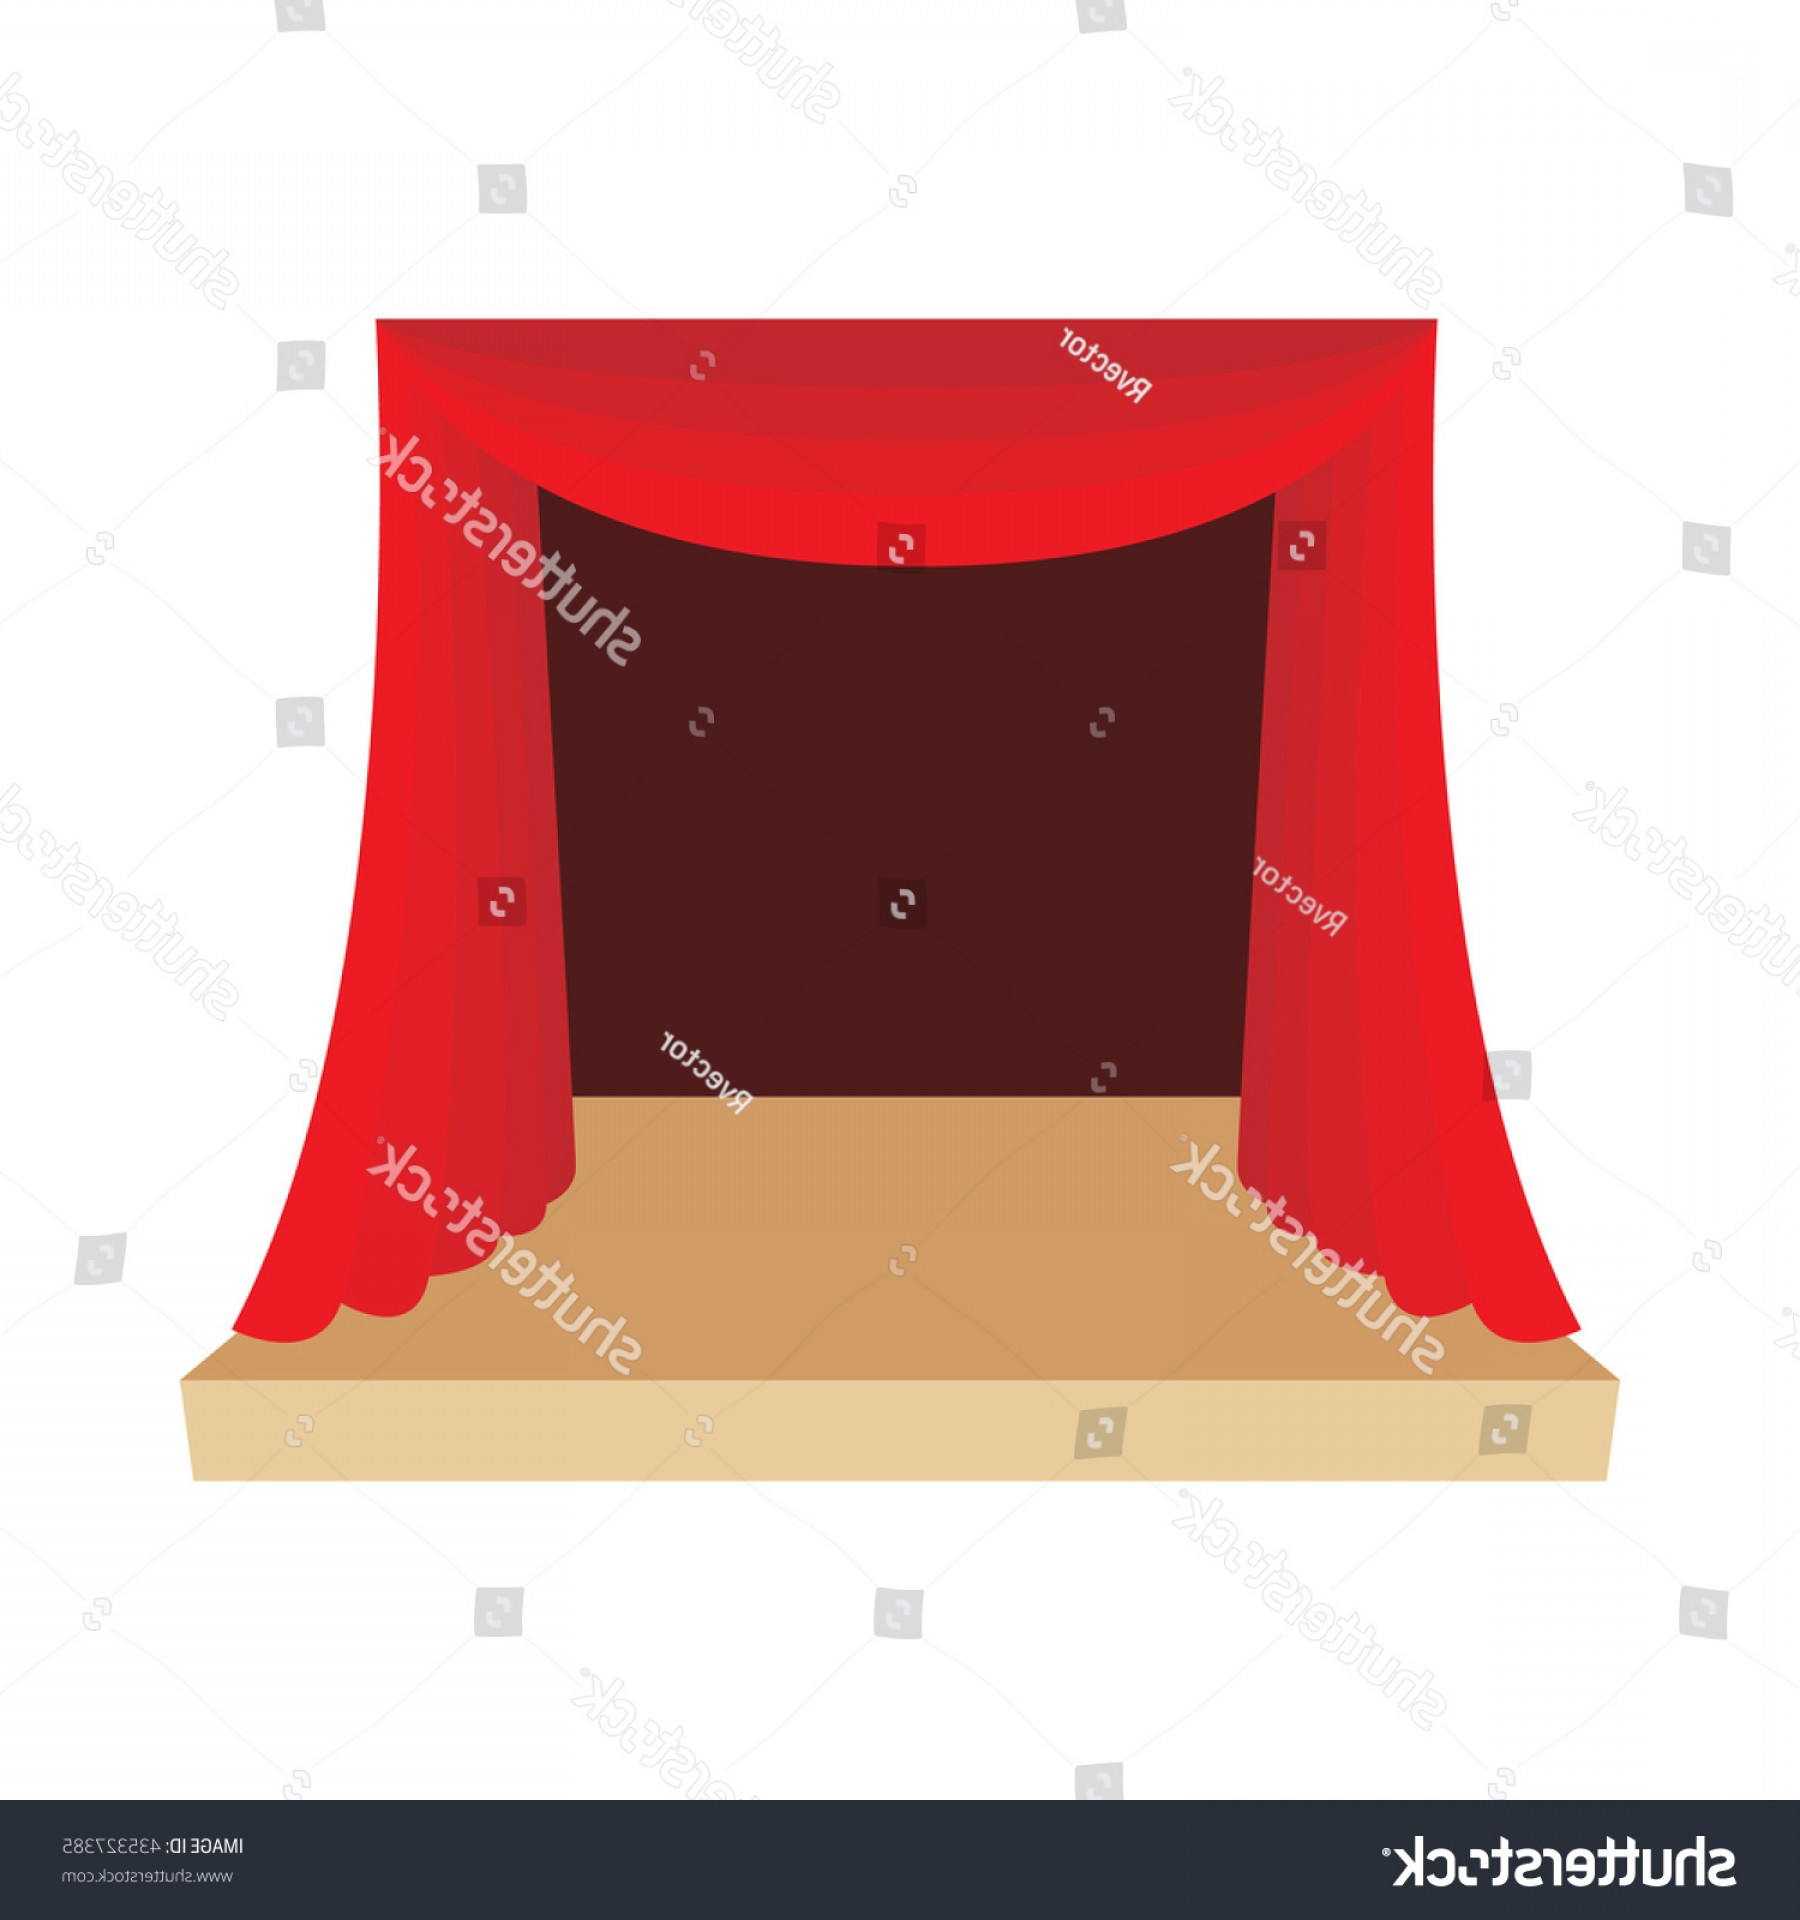 Belgium Theatre Vector Icons: Theater Stage Red Curtain Icon Cartoon